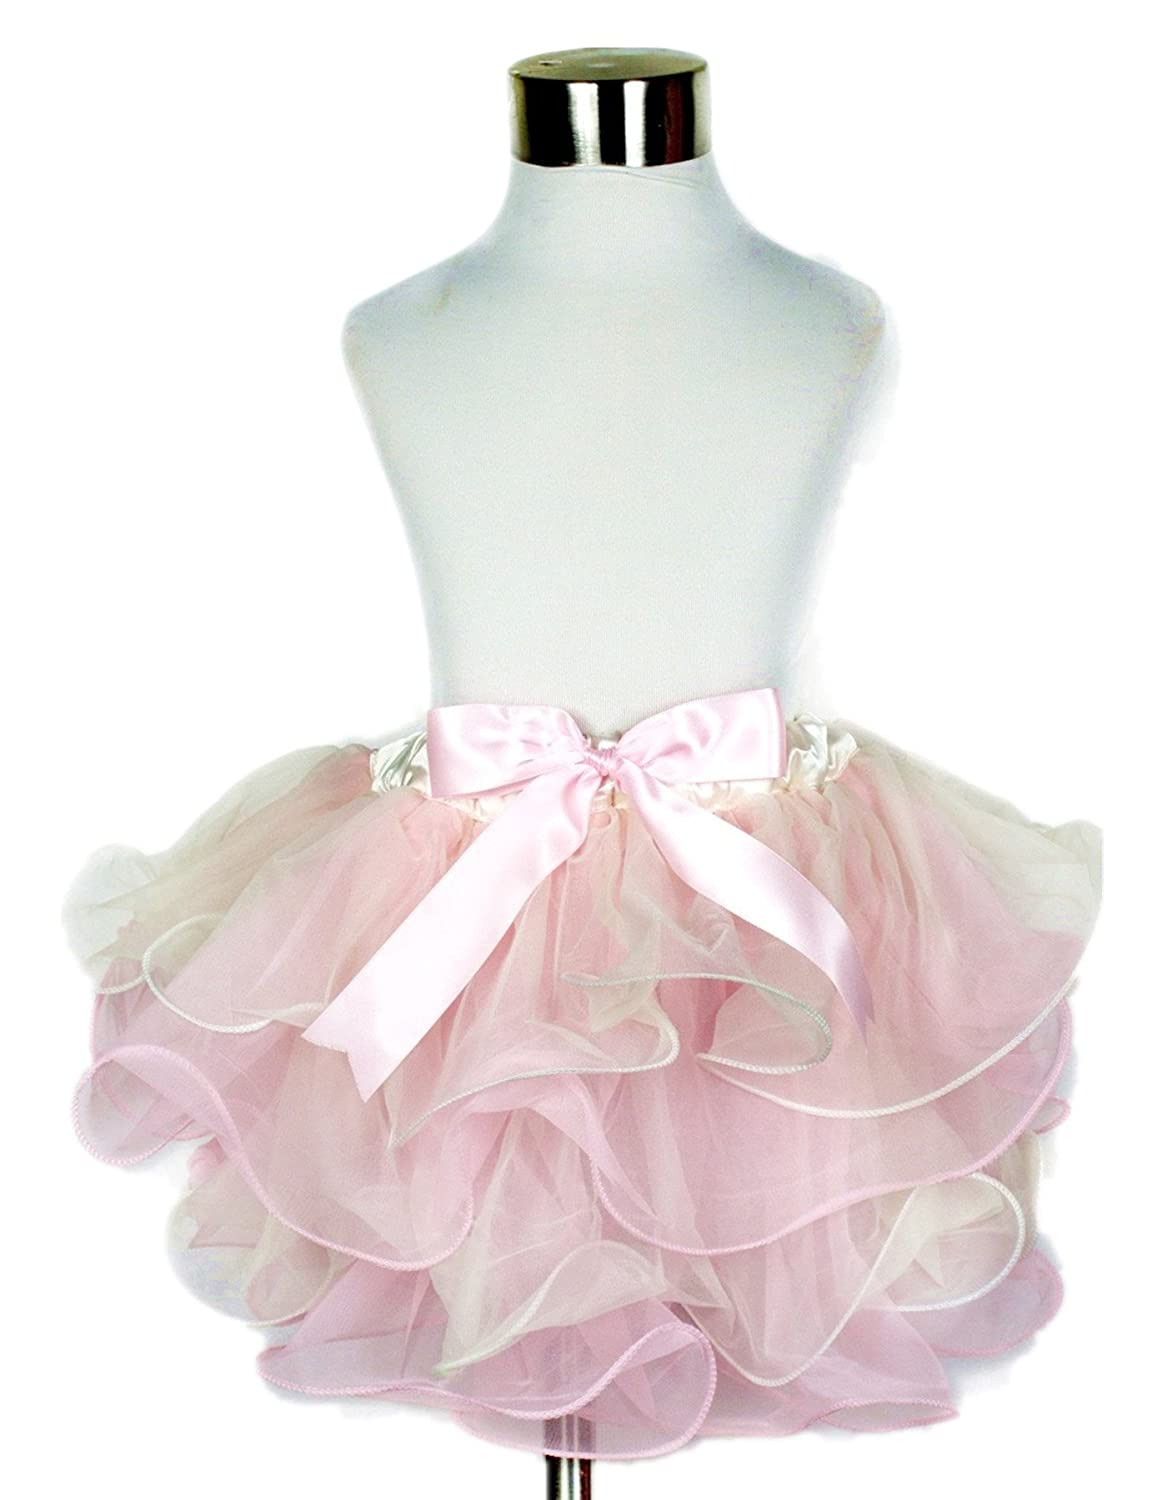 7007e1f23 Beige Light Pink 4 Layers Petal Skirt Dress Tutu Girl Clothing Nb-8y